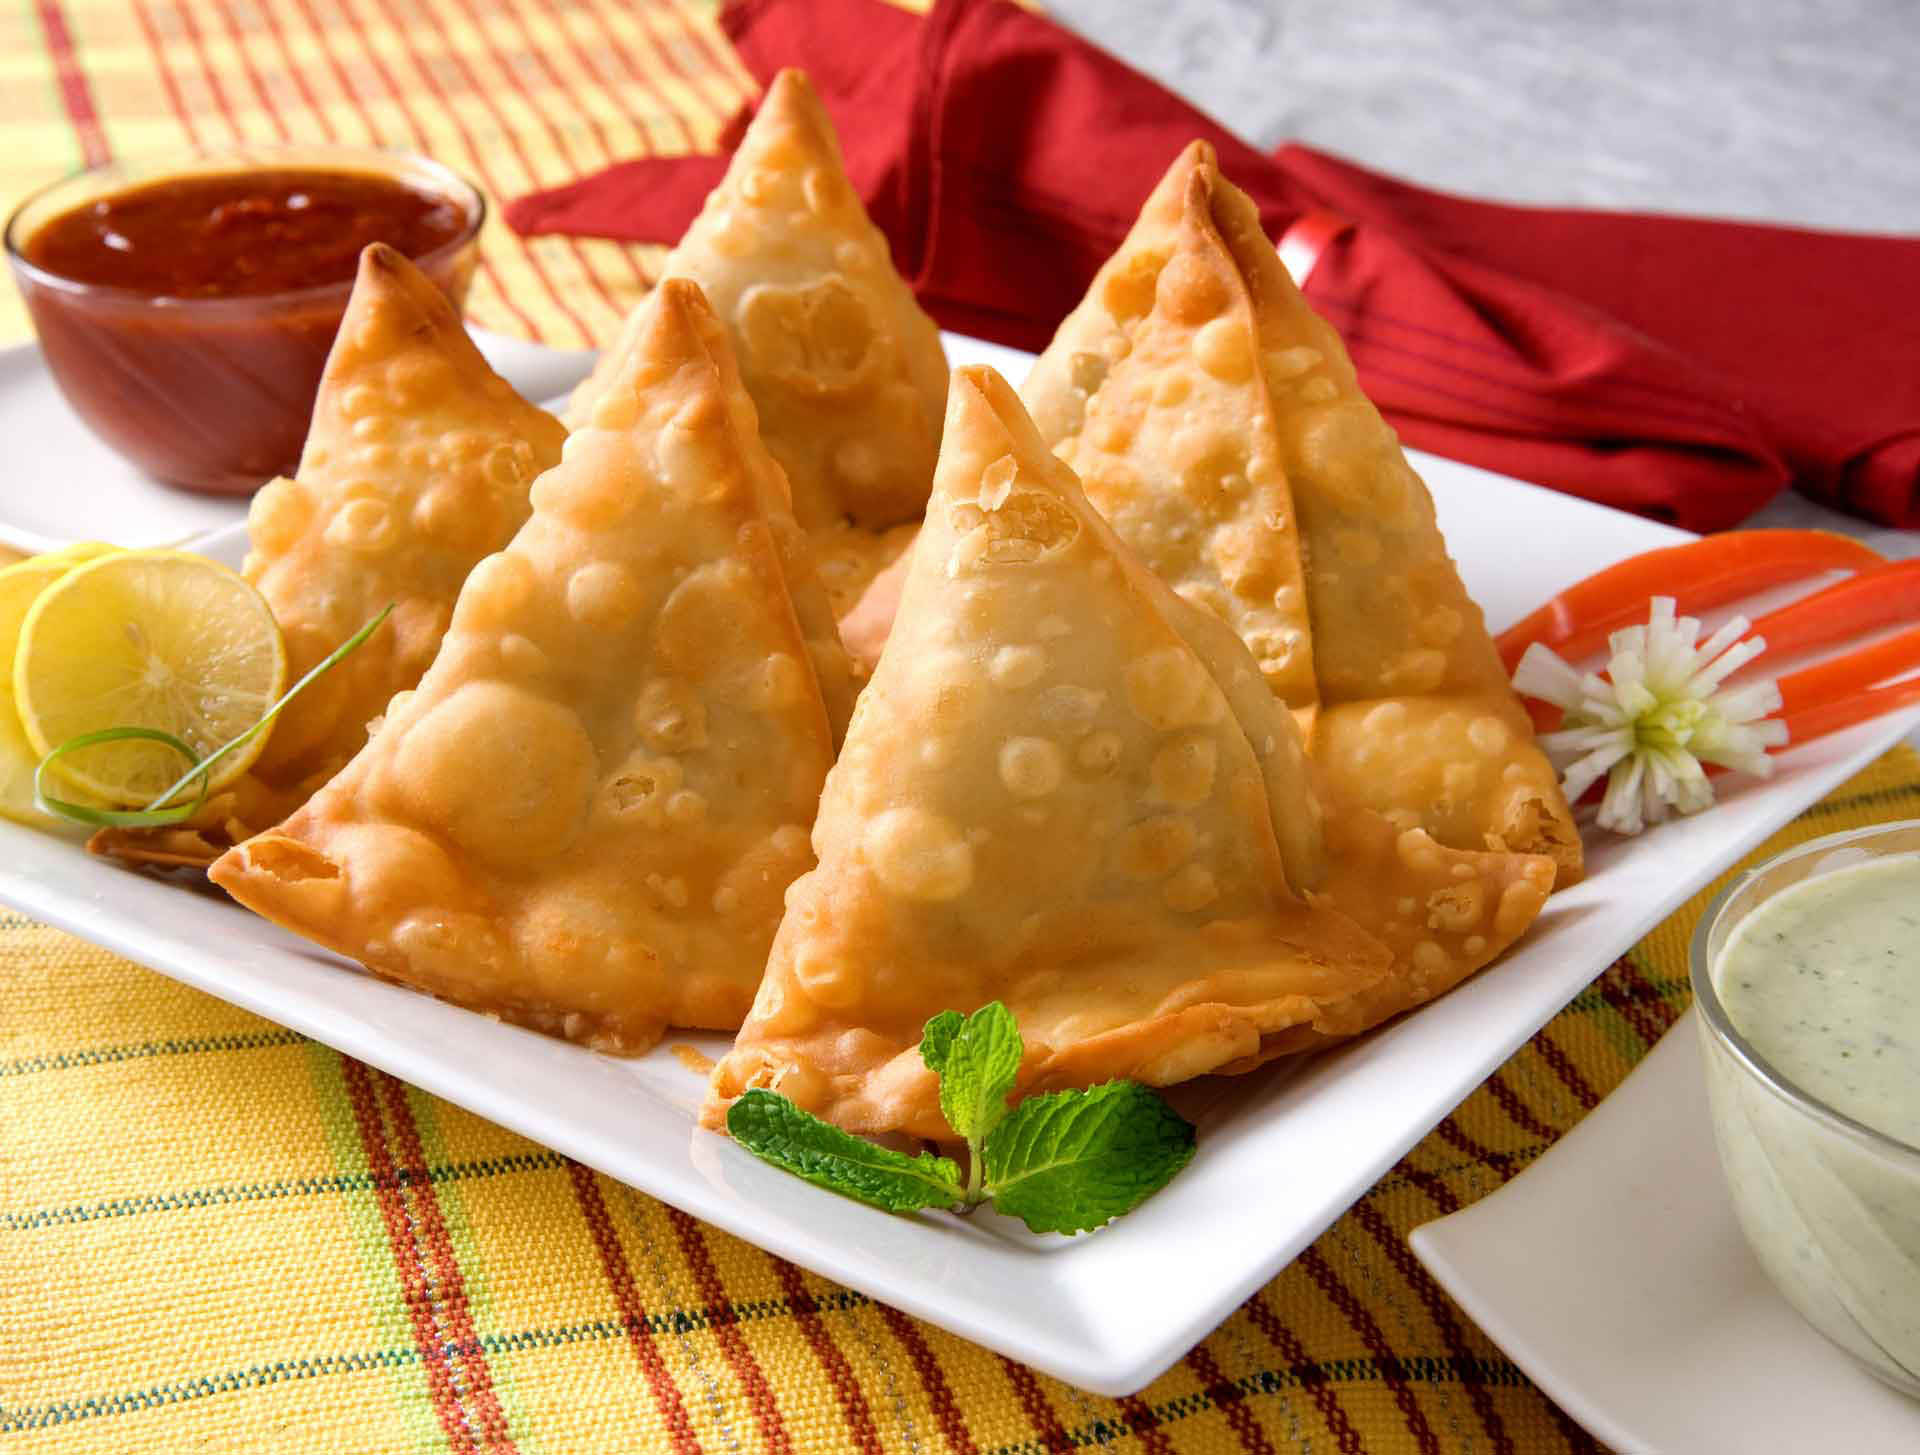 indian cuisine, bakery, catering, party hall, delivery, take out; ashburn, va